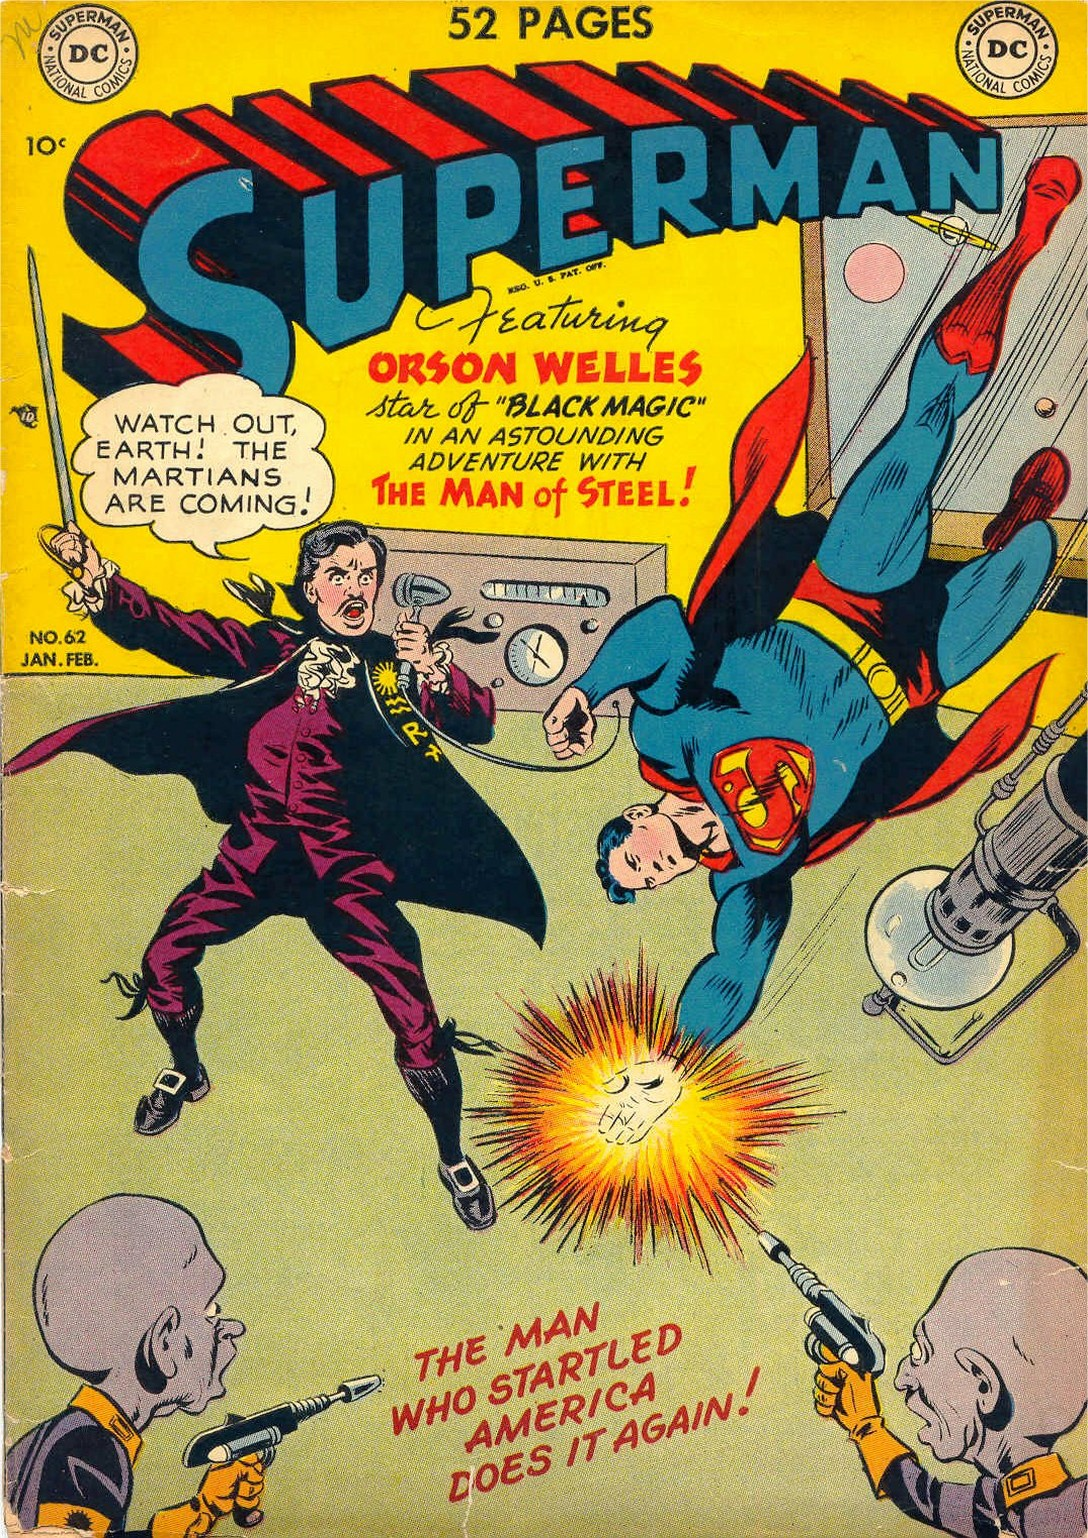 Superman number 62 with Orswon Welles - Orson Welles and Superman teaming up to save the world!